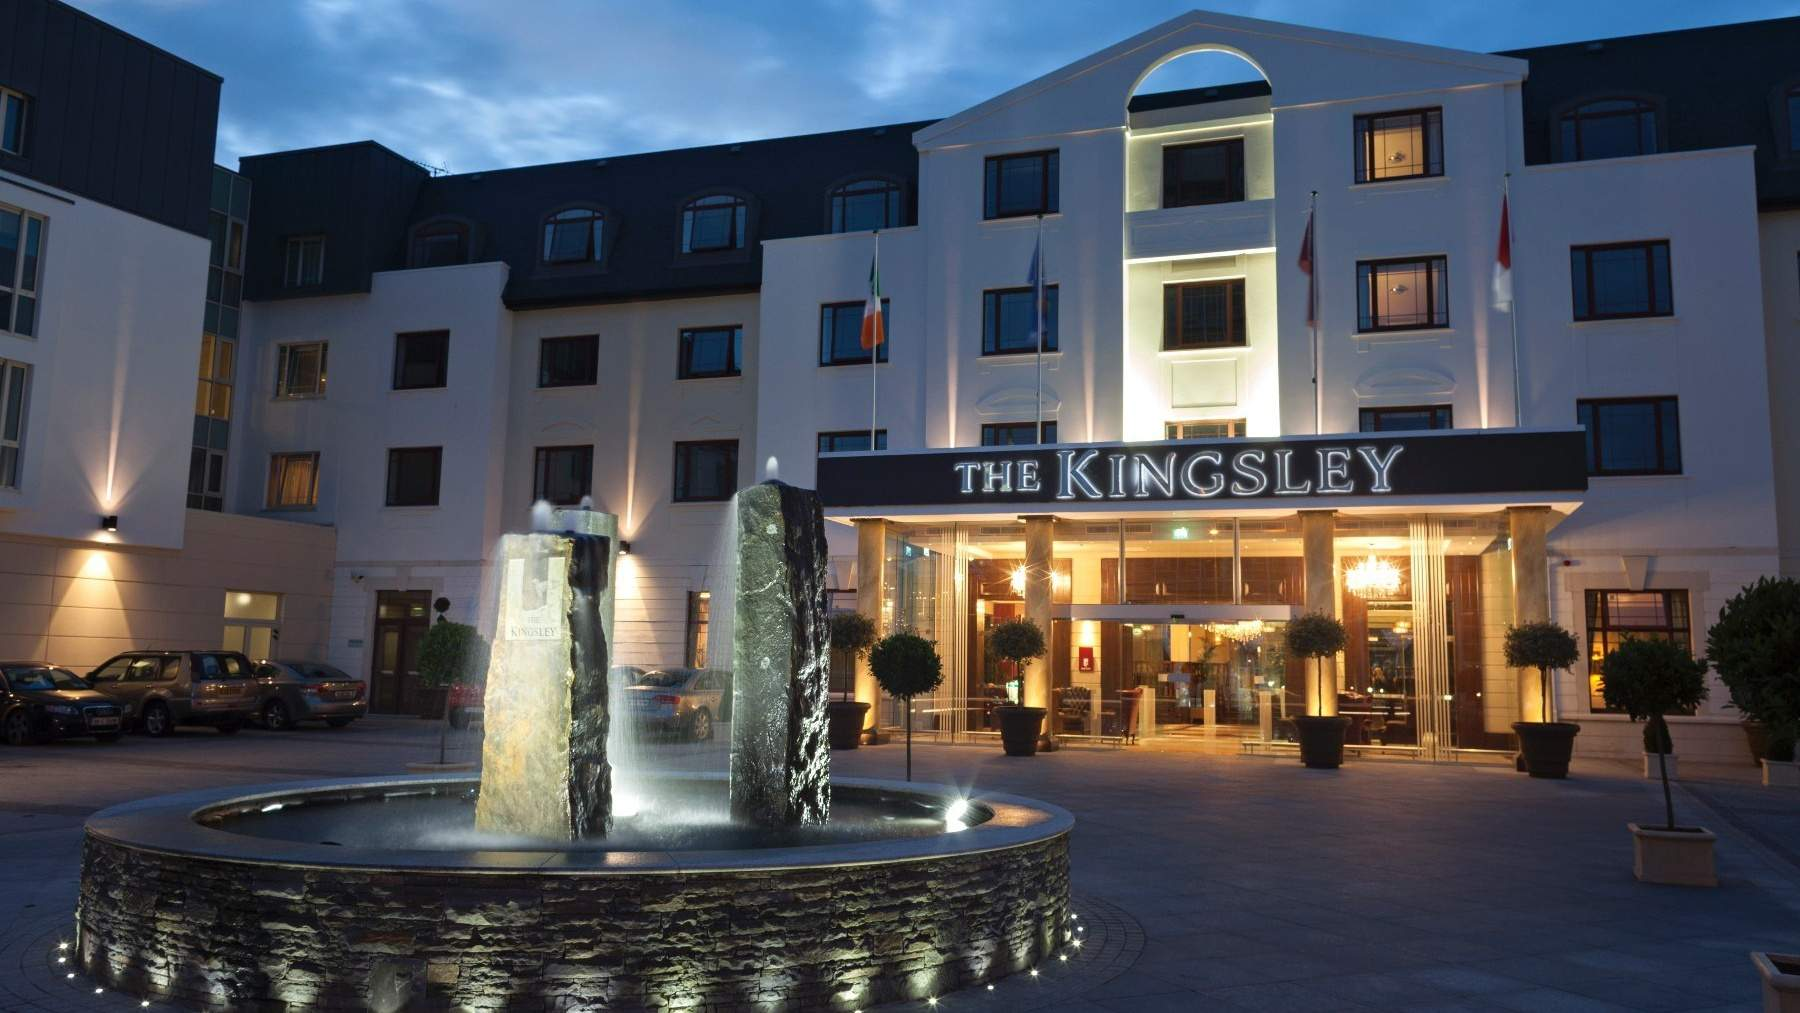 Win Afternoon Tea Plus A Festive Meal At The Kingsley!